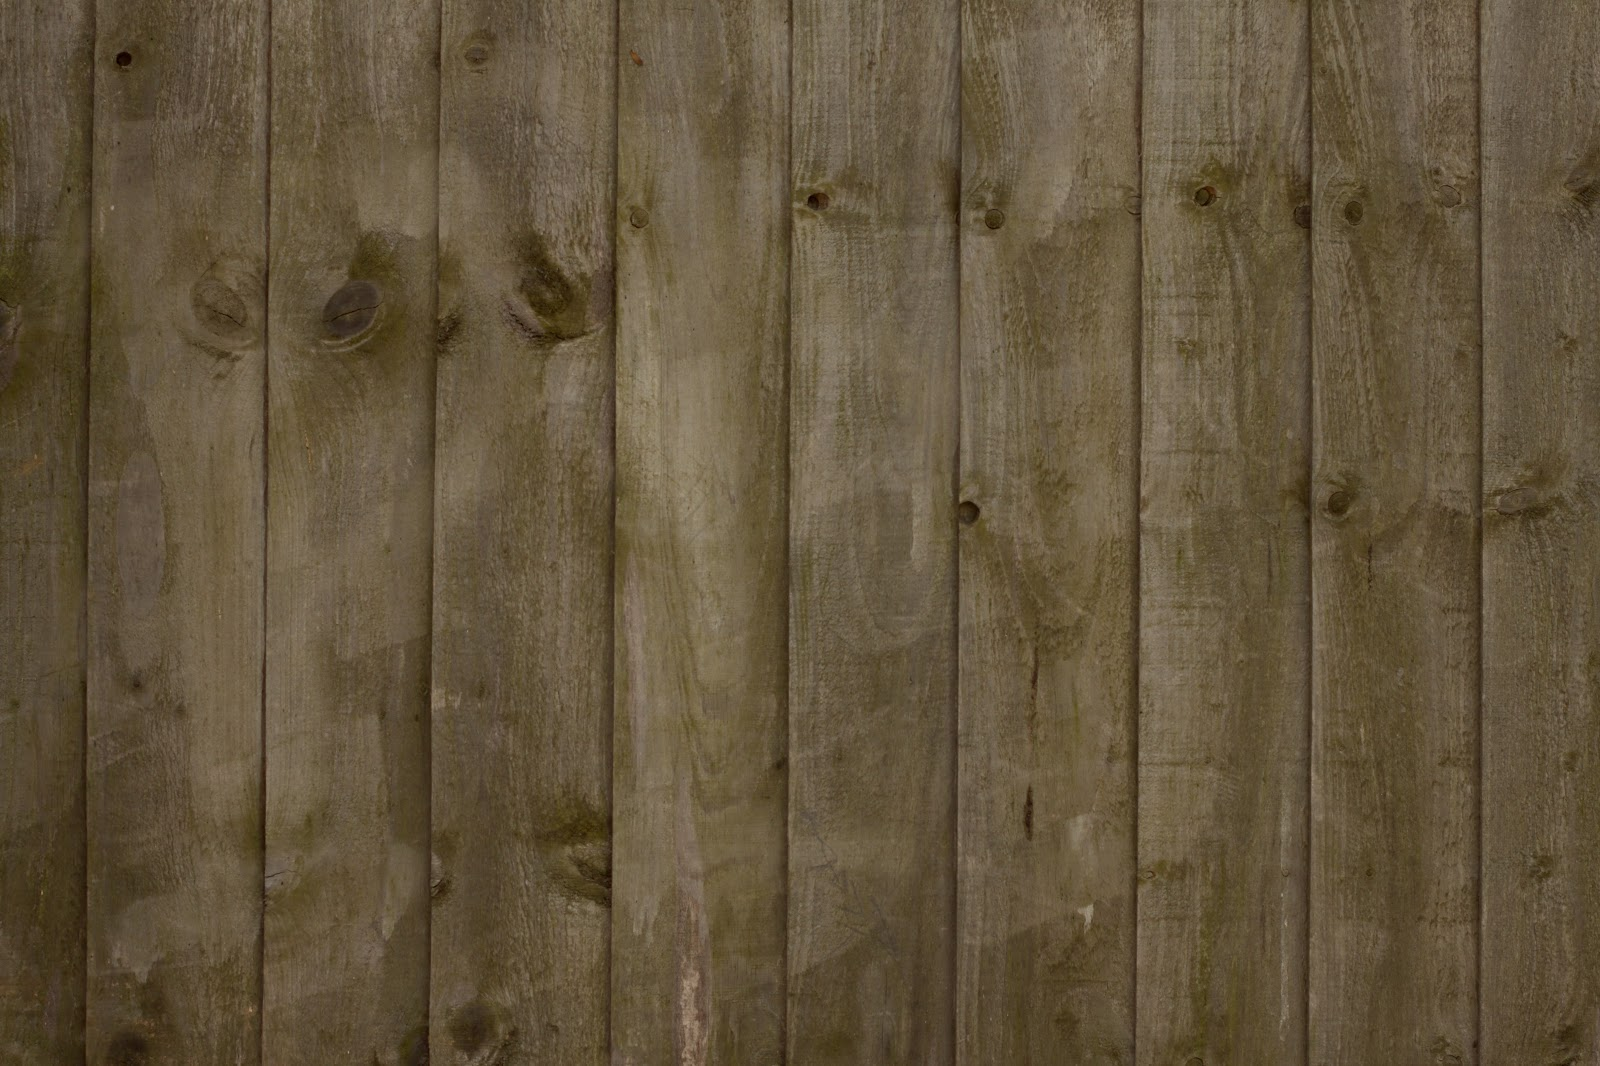 High Resolution Textures Wood Dry Cracked Fence Plank